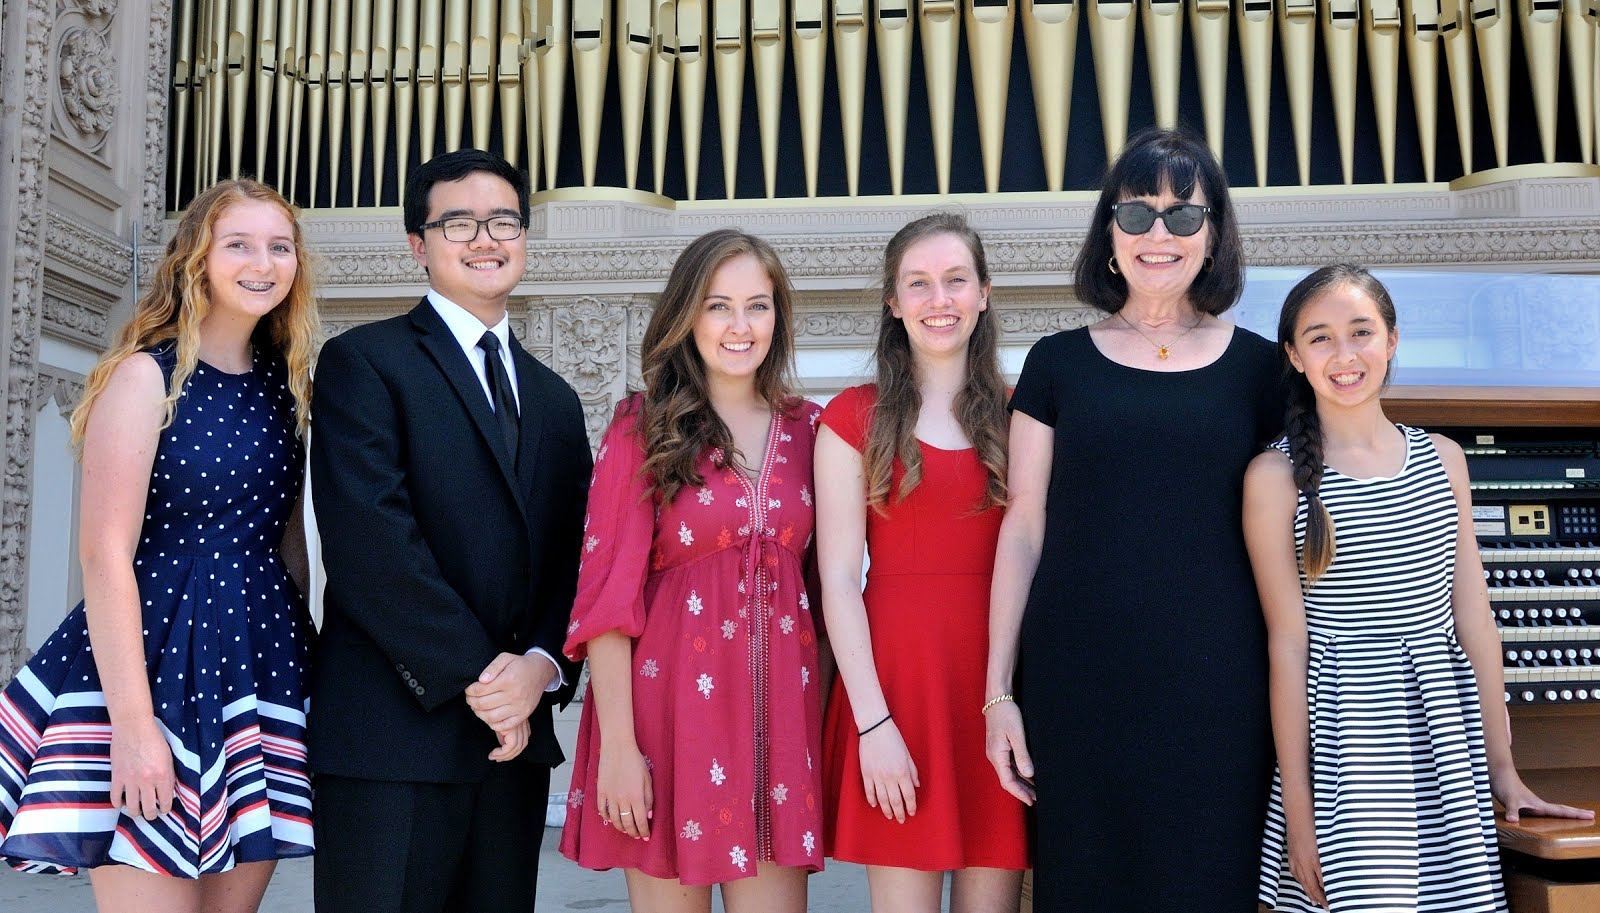 June 5 at the Spreckels Organ Pavilion